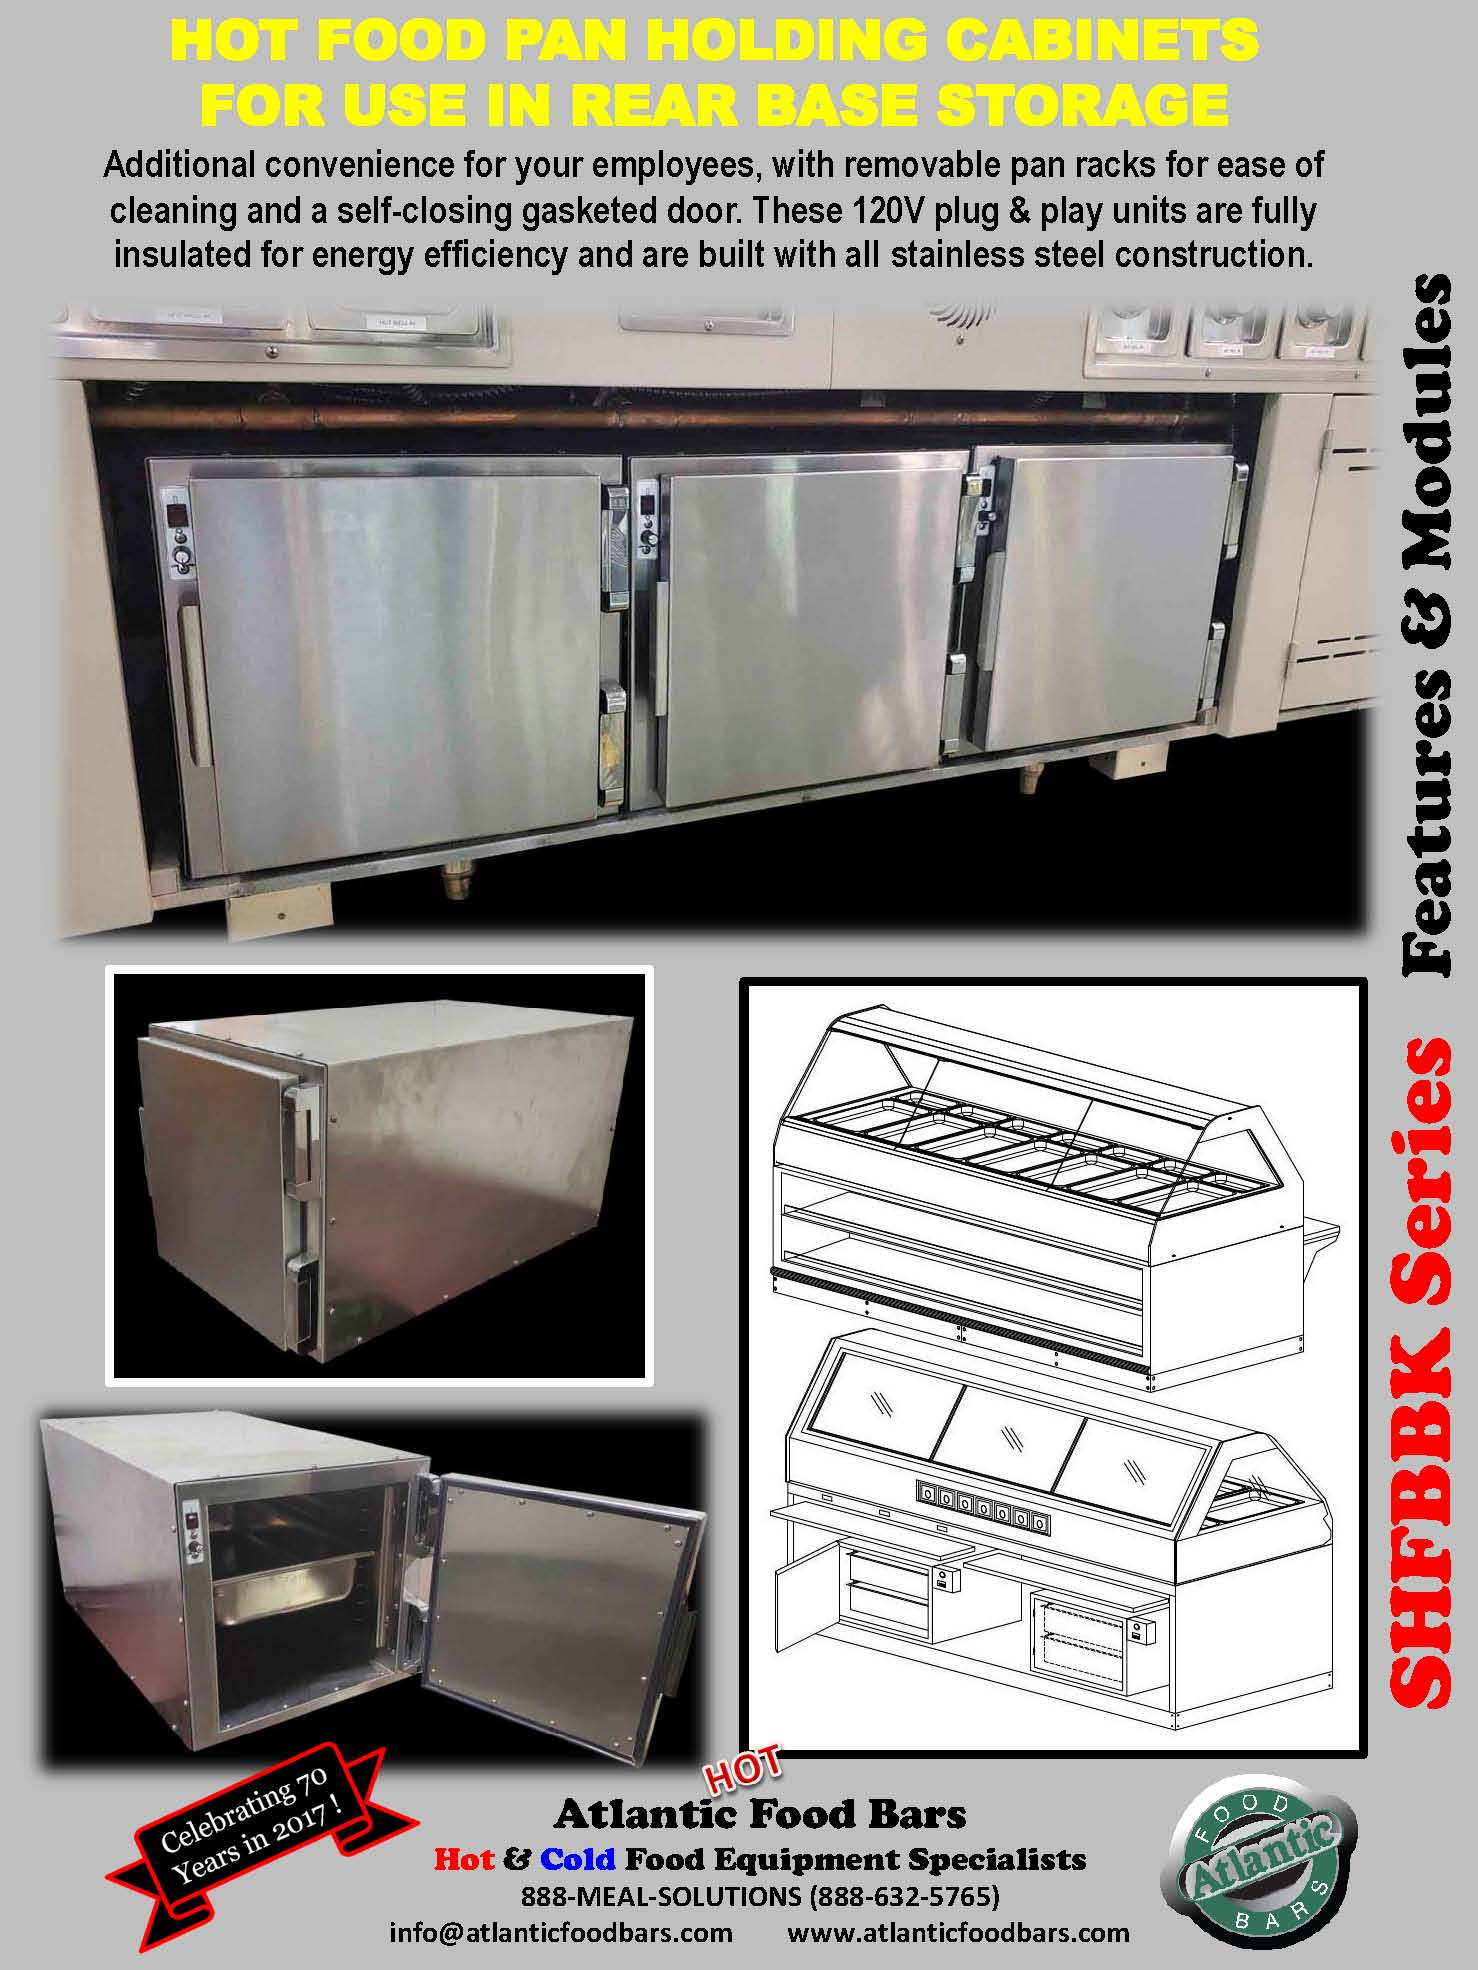 Atlantic Food Bars - Hot Food Pan Holding Cabinets for use in rear base storage of hot food merchandisers - HHC_Page_5